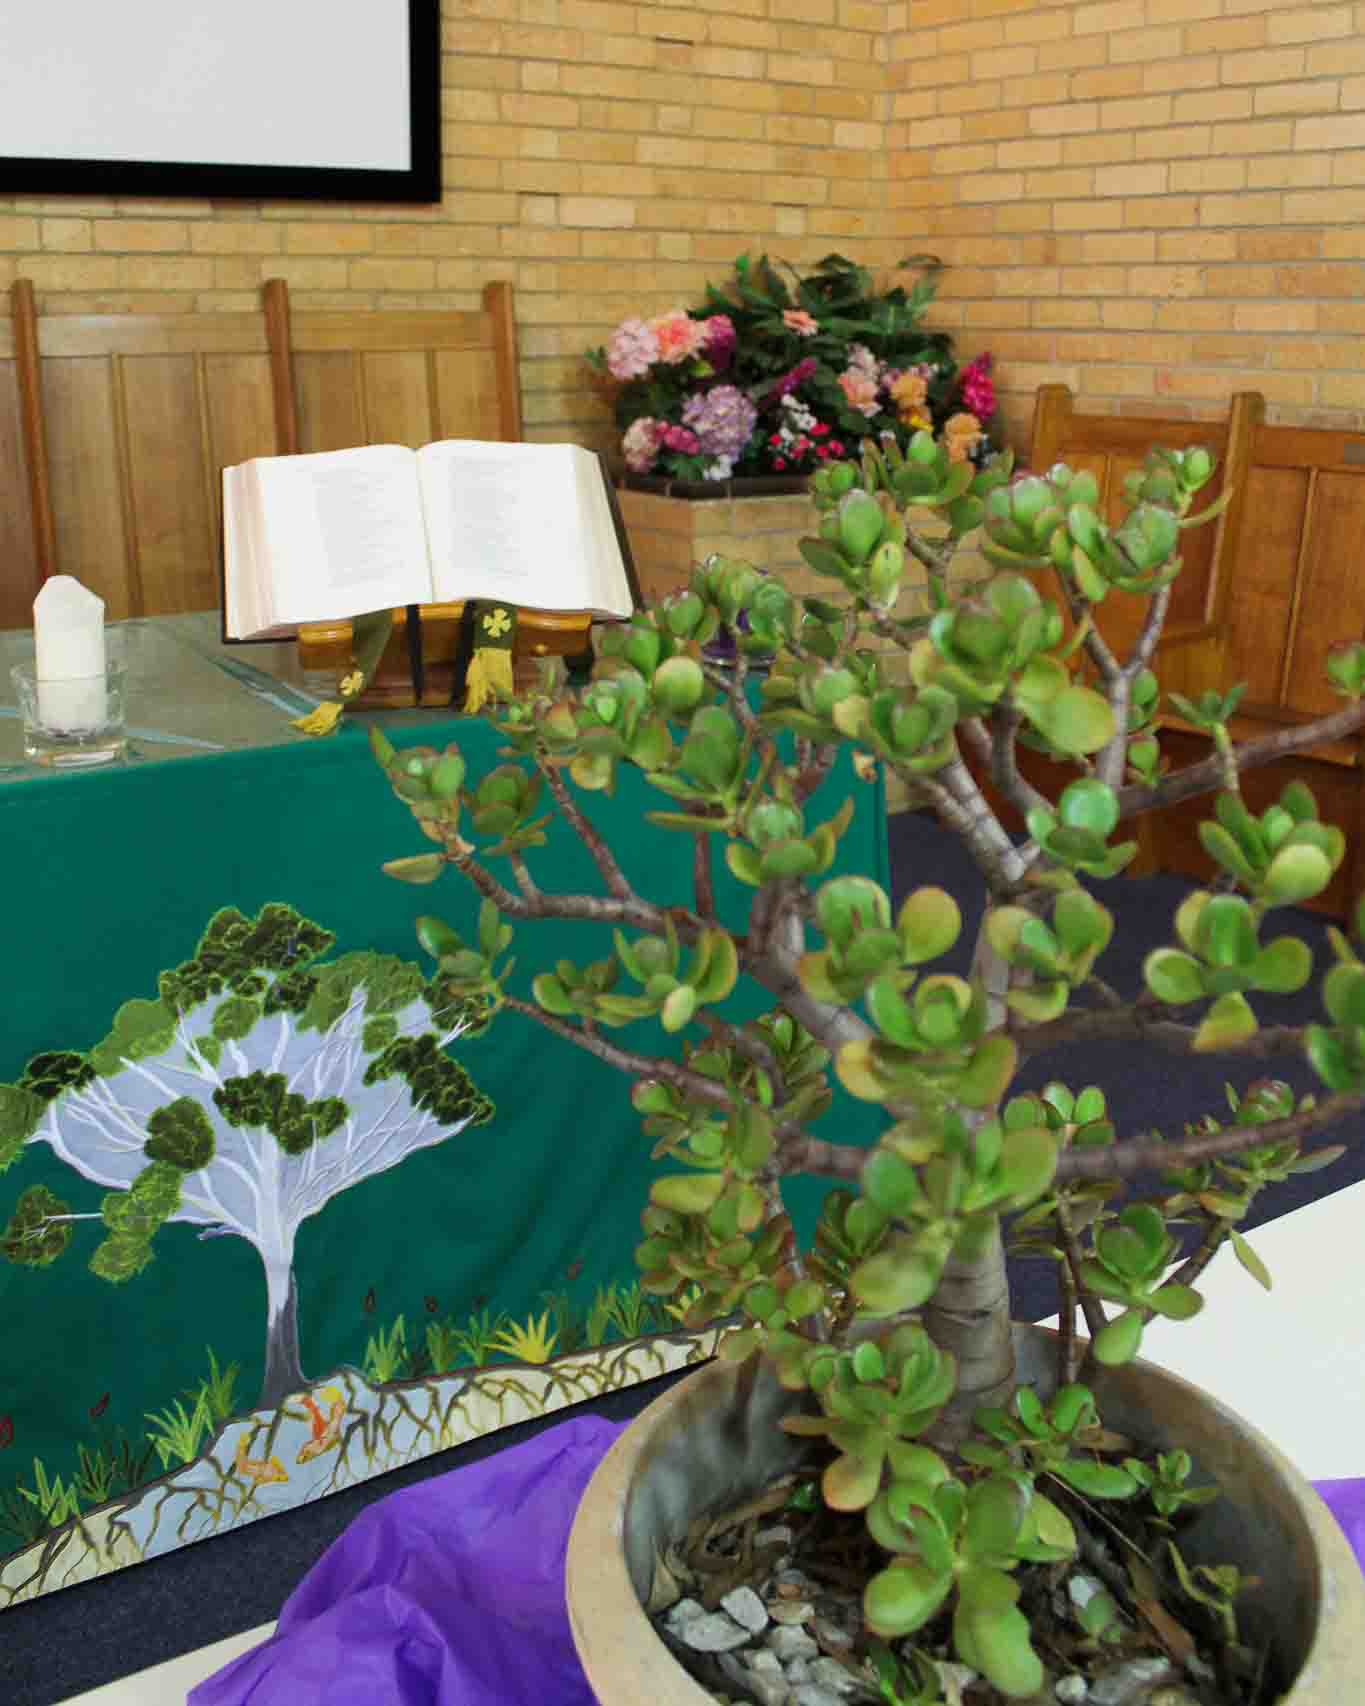 Coburg Uniting Church Melbourne Our Beliefs image: church altar in the background, green plant in the foreground